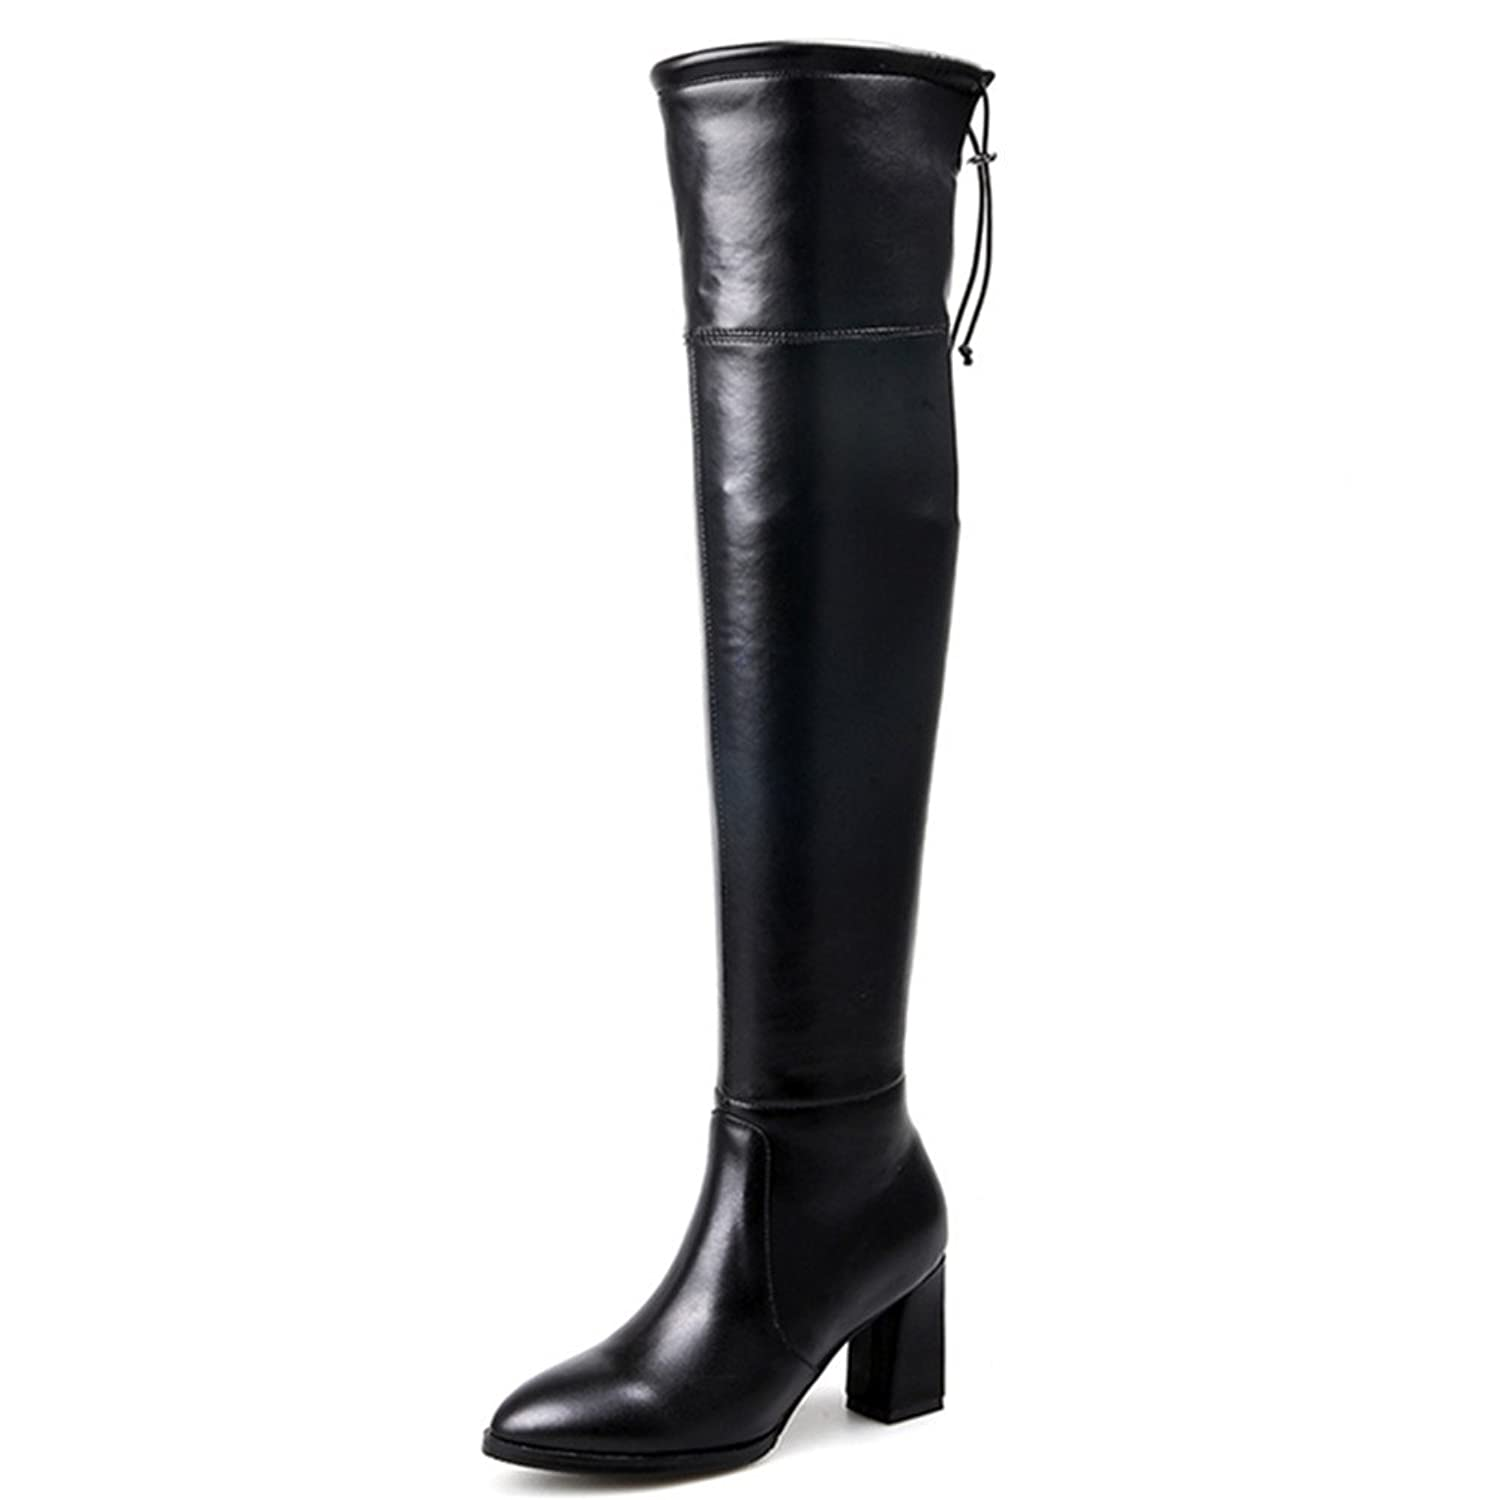 Women's Handmade Thigh High Over The Knee Chunky Heel Boots